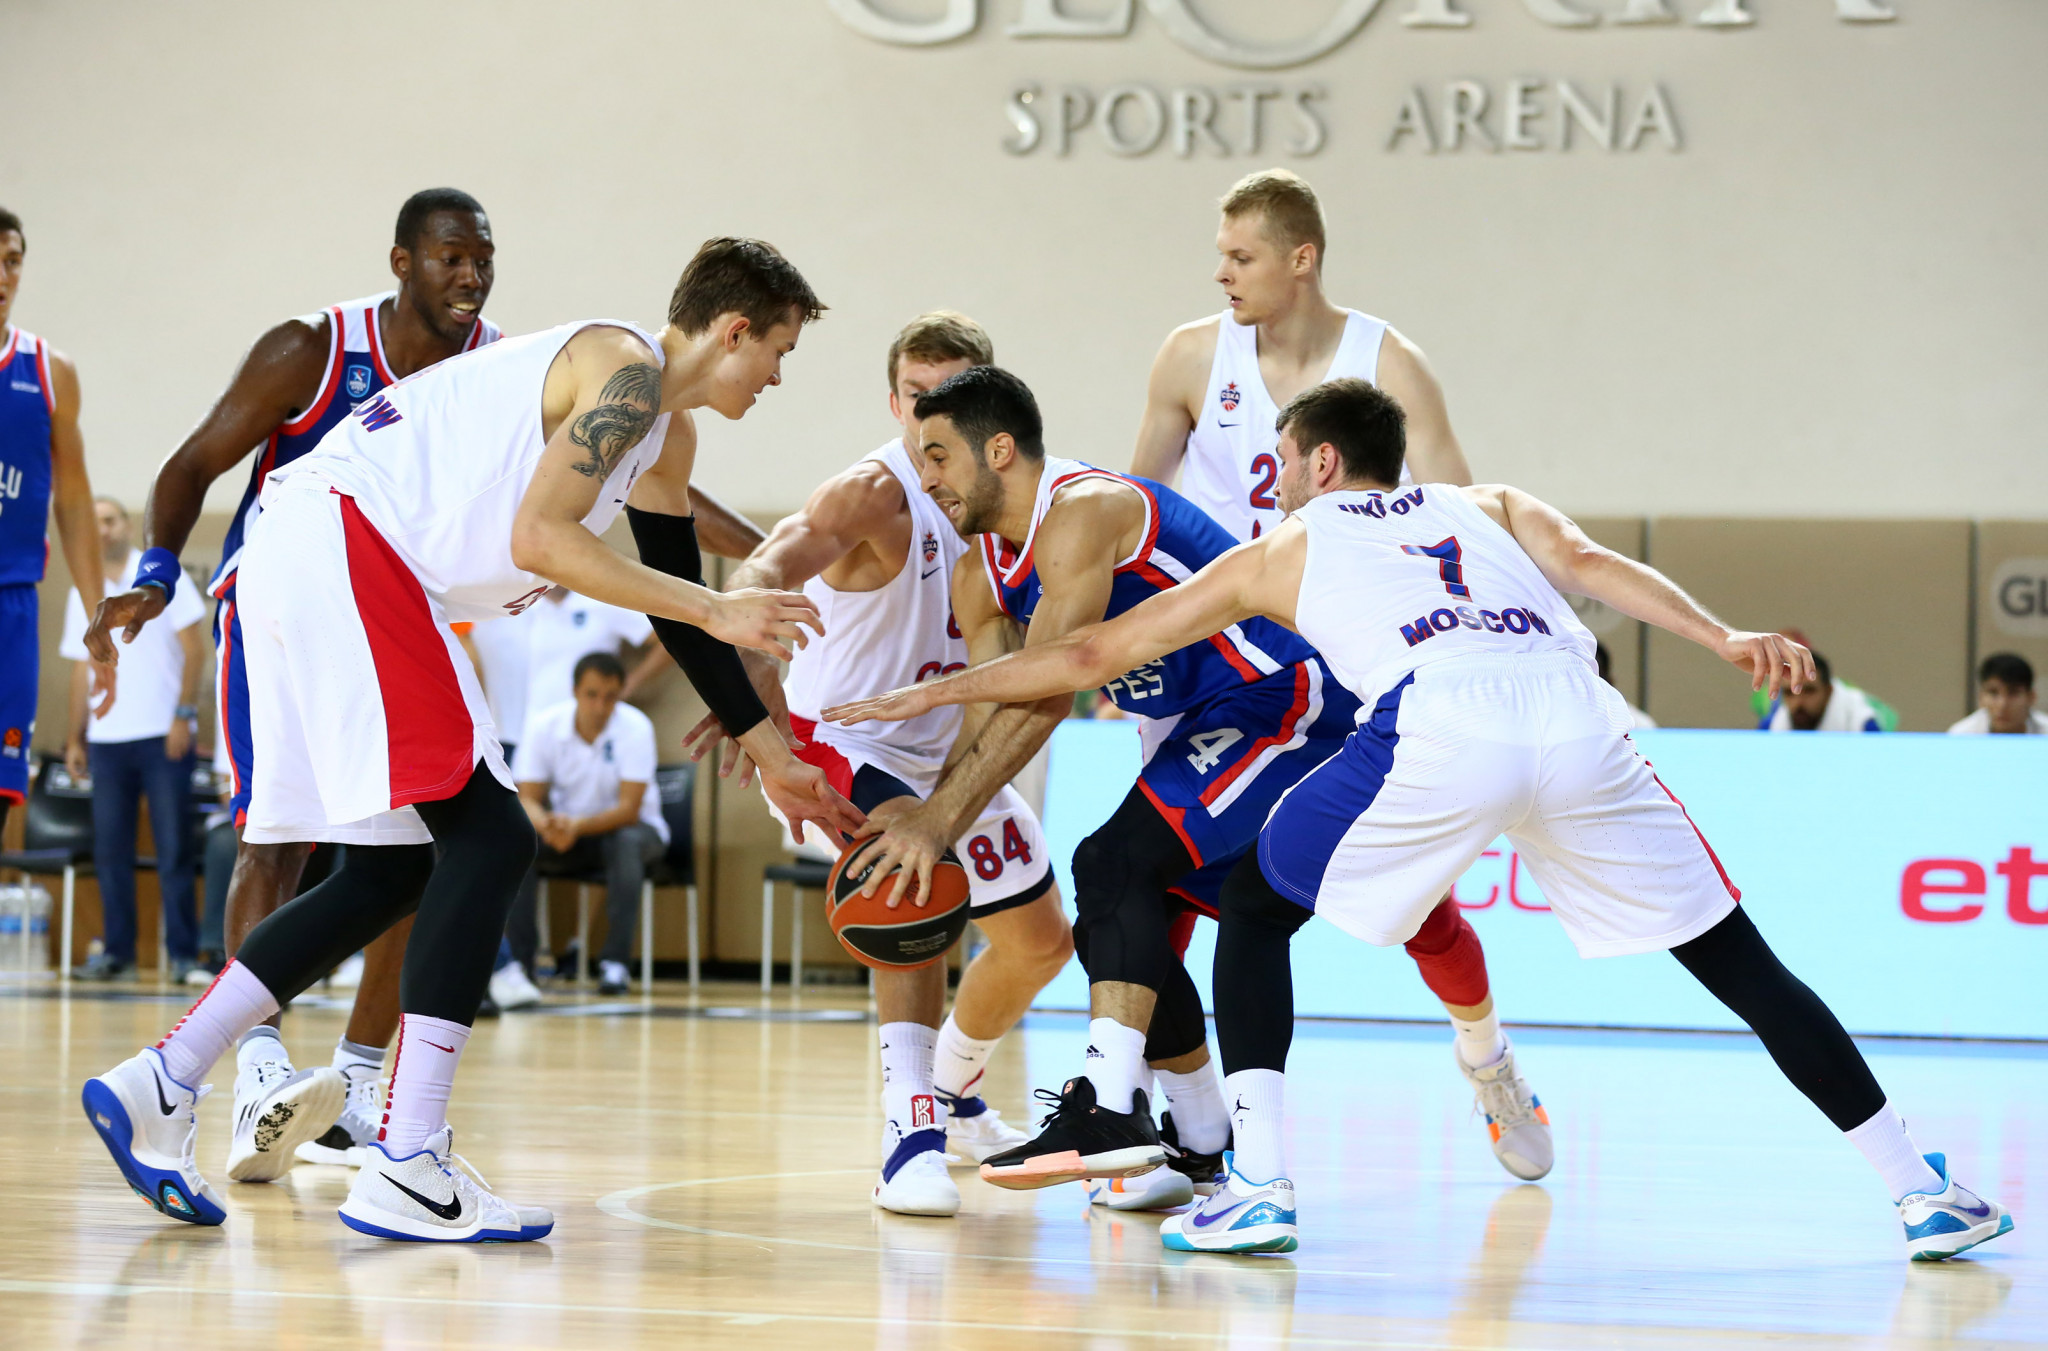 Anadolu Efes captain Doğuş Balbay found himself under severe pressure against CSKA Moscow ©GSA